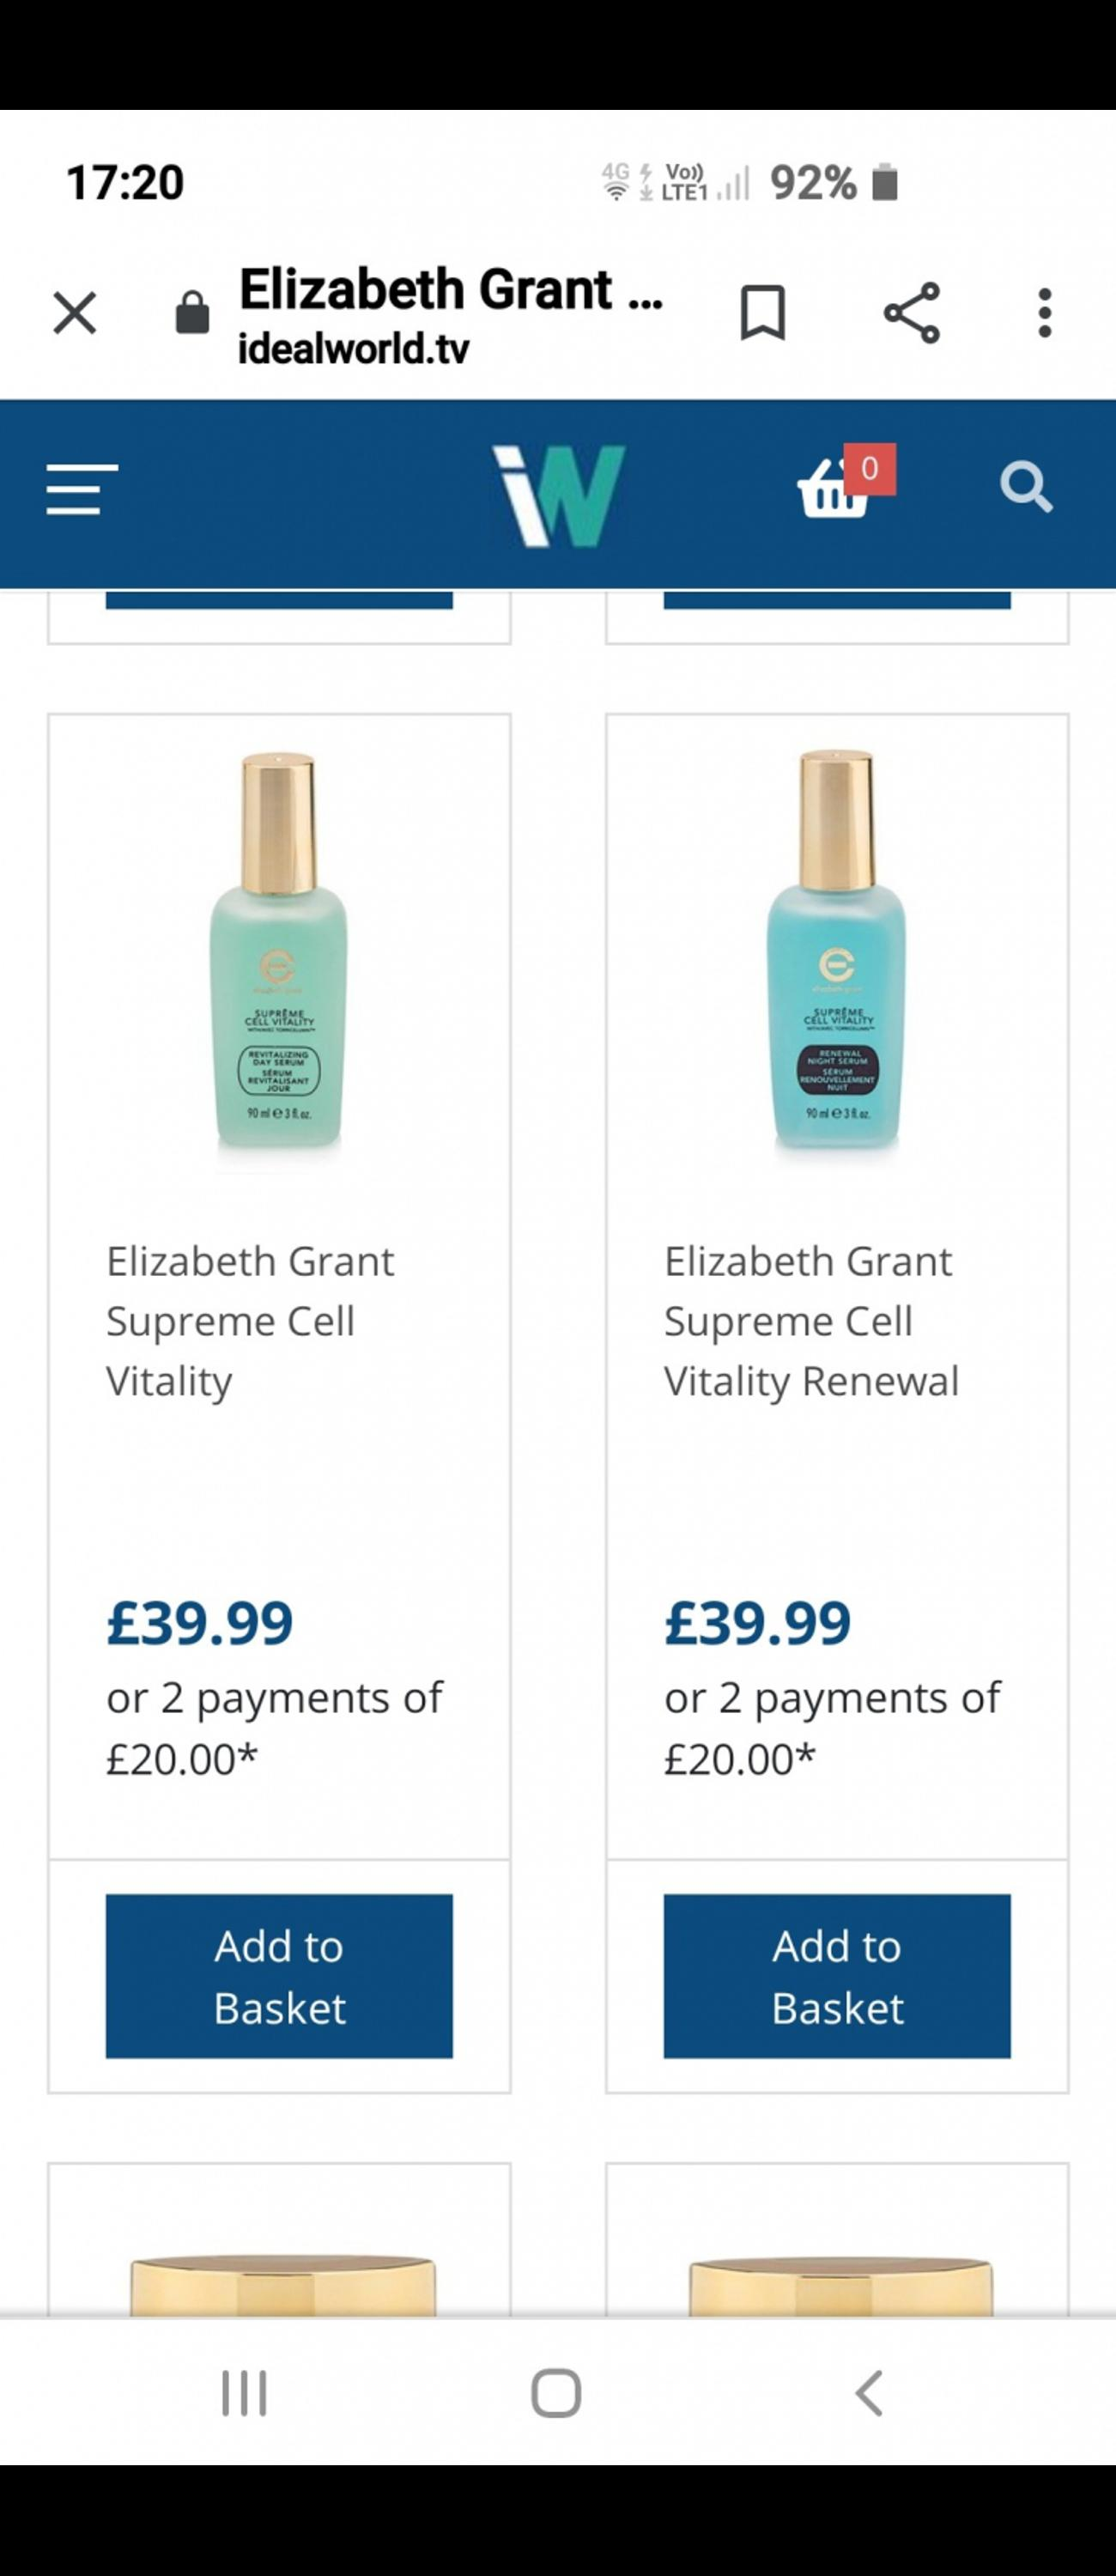 Supreme cell vitality victory eye serum 45ml also supreme cell vitality revitalizing day serum 90ml and supreme cell vitality renewal night serum 90ml..the two large size are rrp £39.99 each and the small size rrp is £29.99 totalling £110..will accept £15 each for the bigger size and £10 for the small size or £35 for all of them